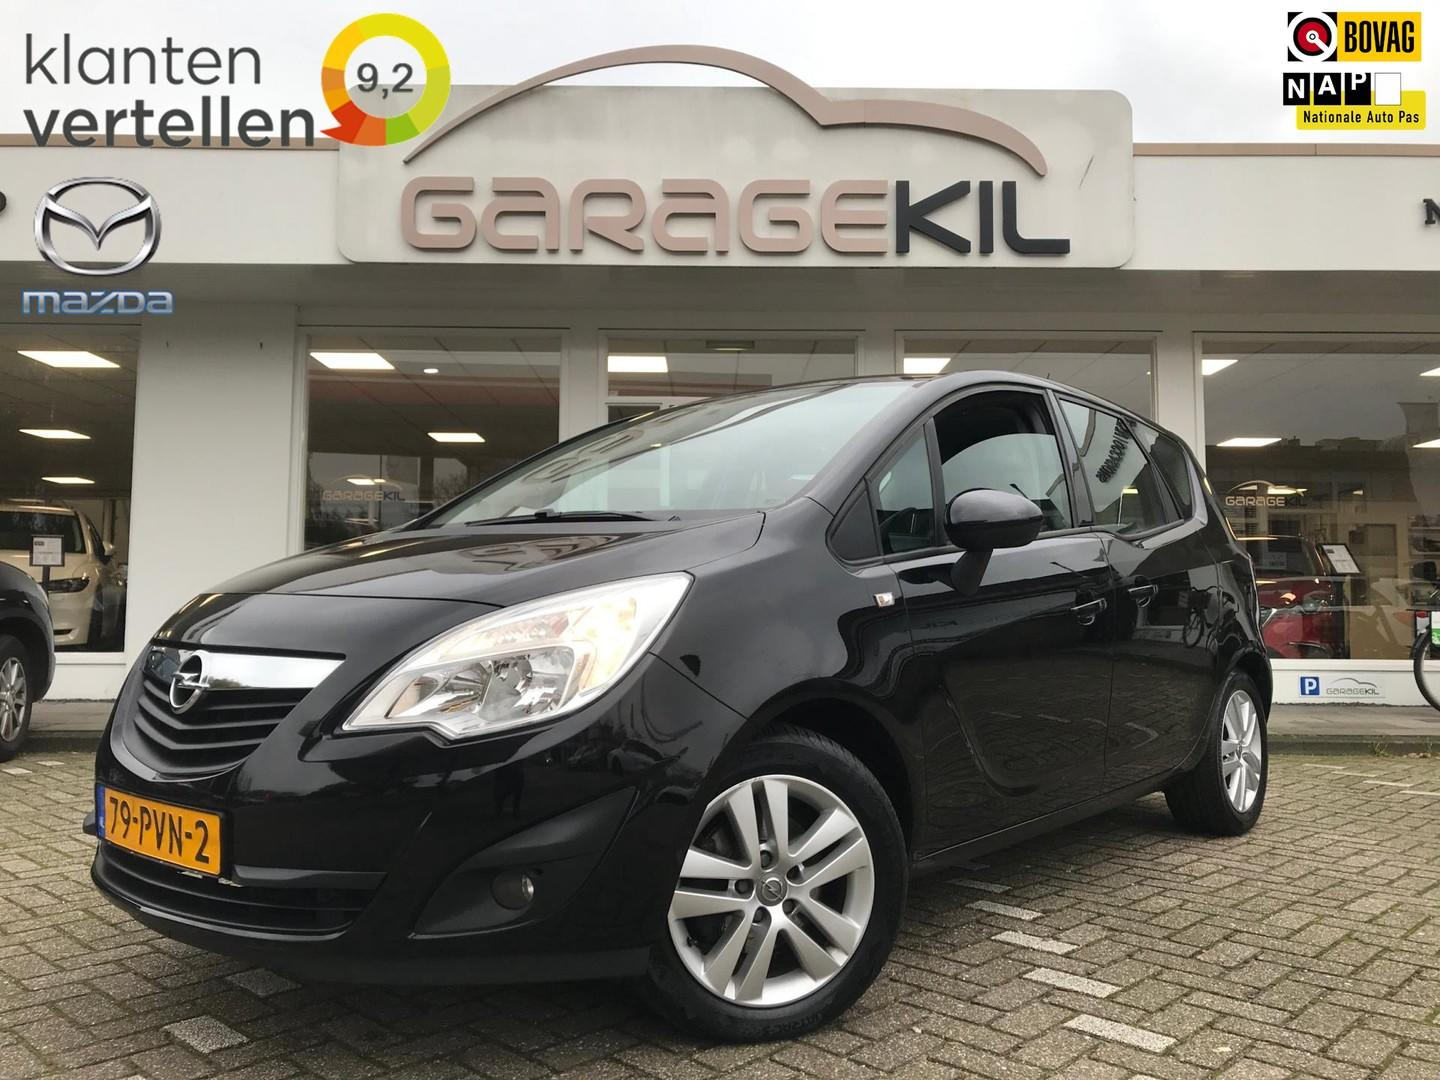 Opel Meriva 1.4 turbo edition org.nl